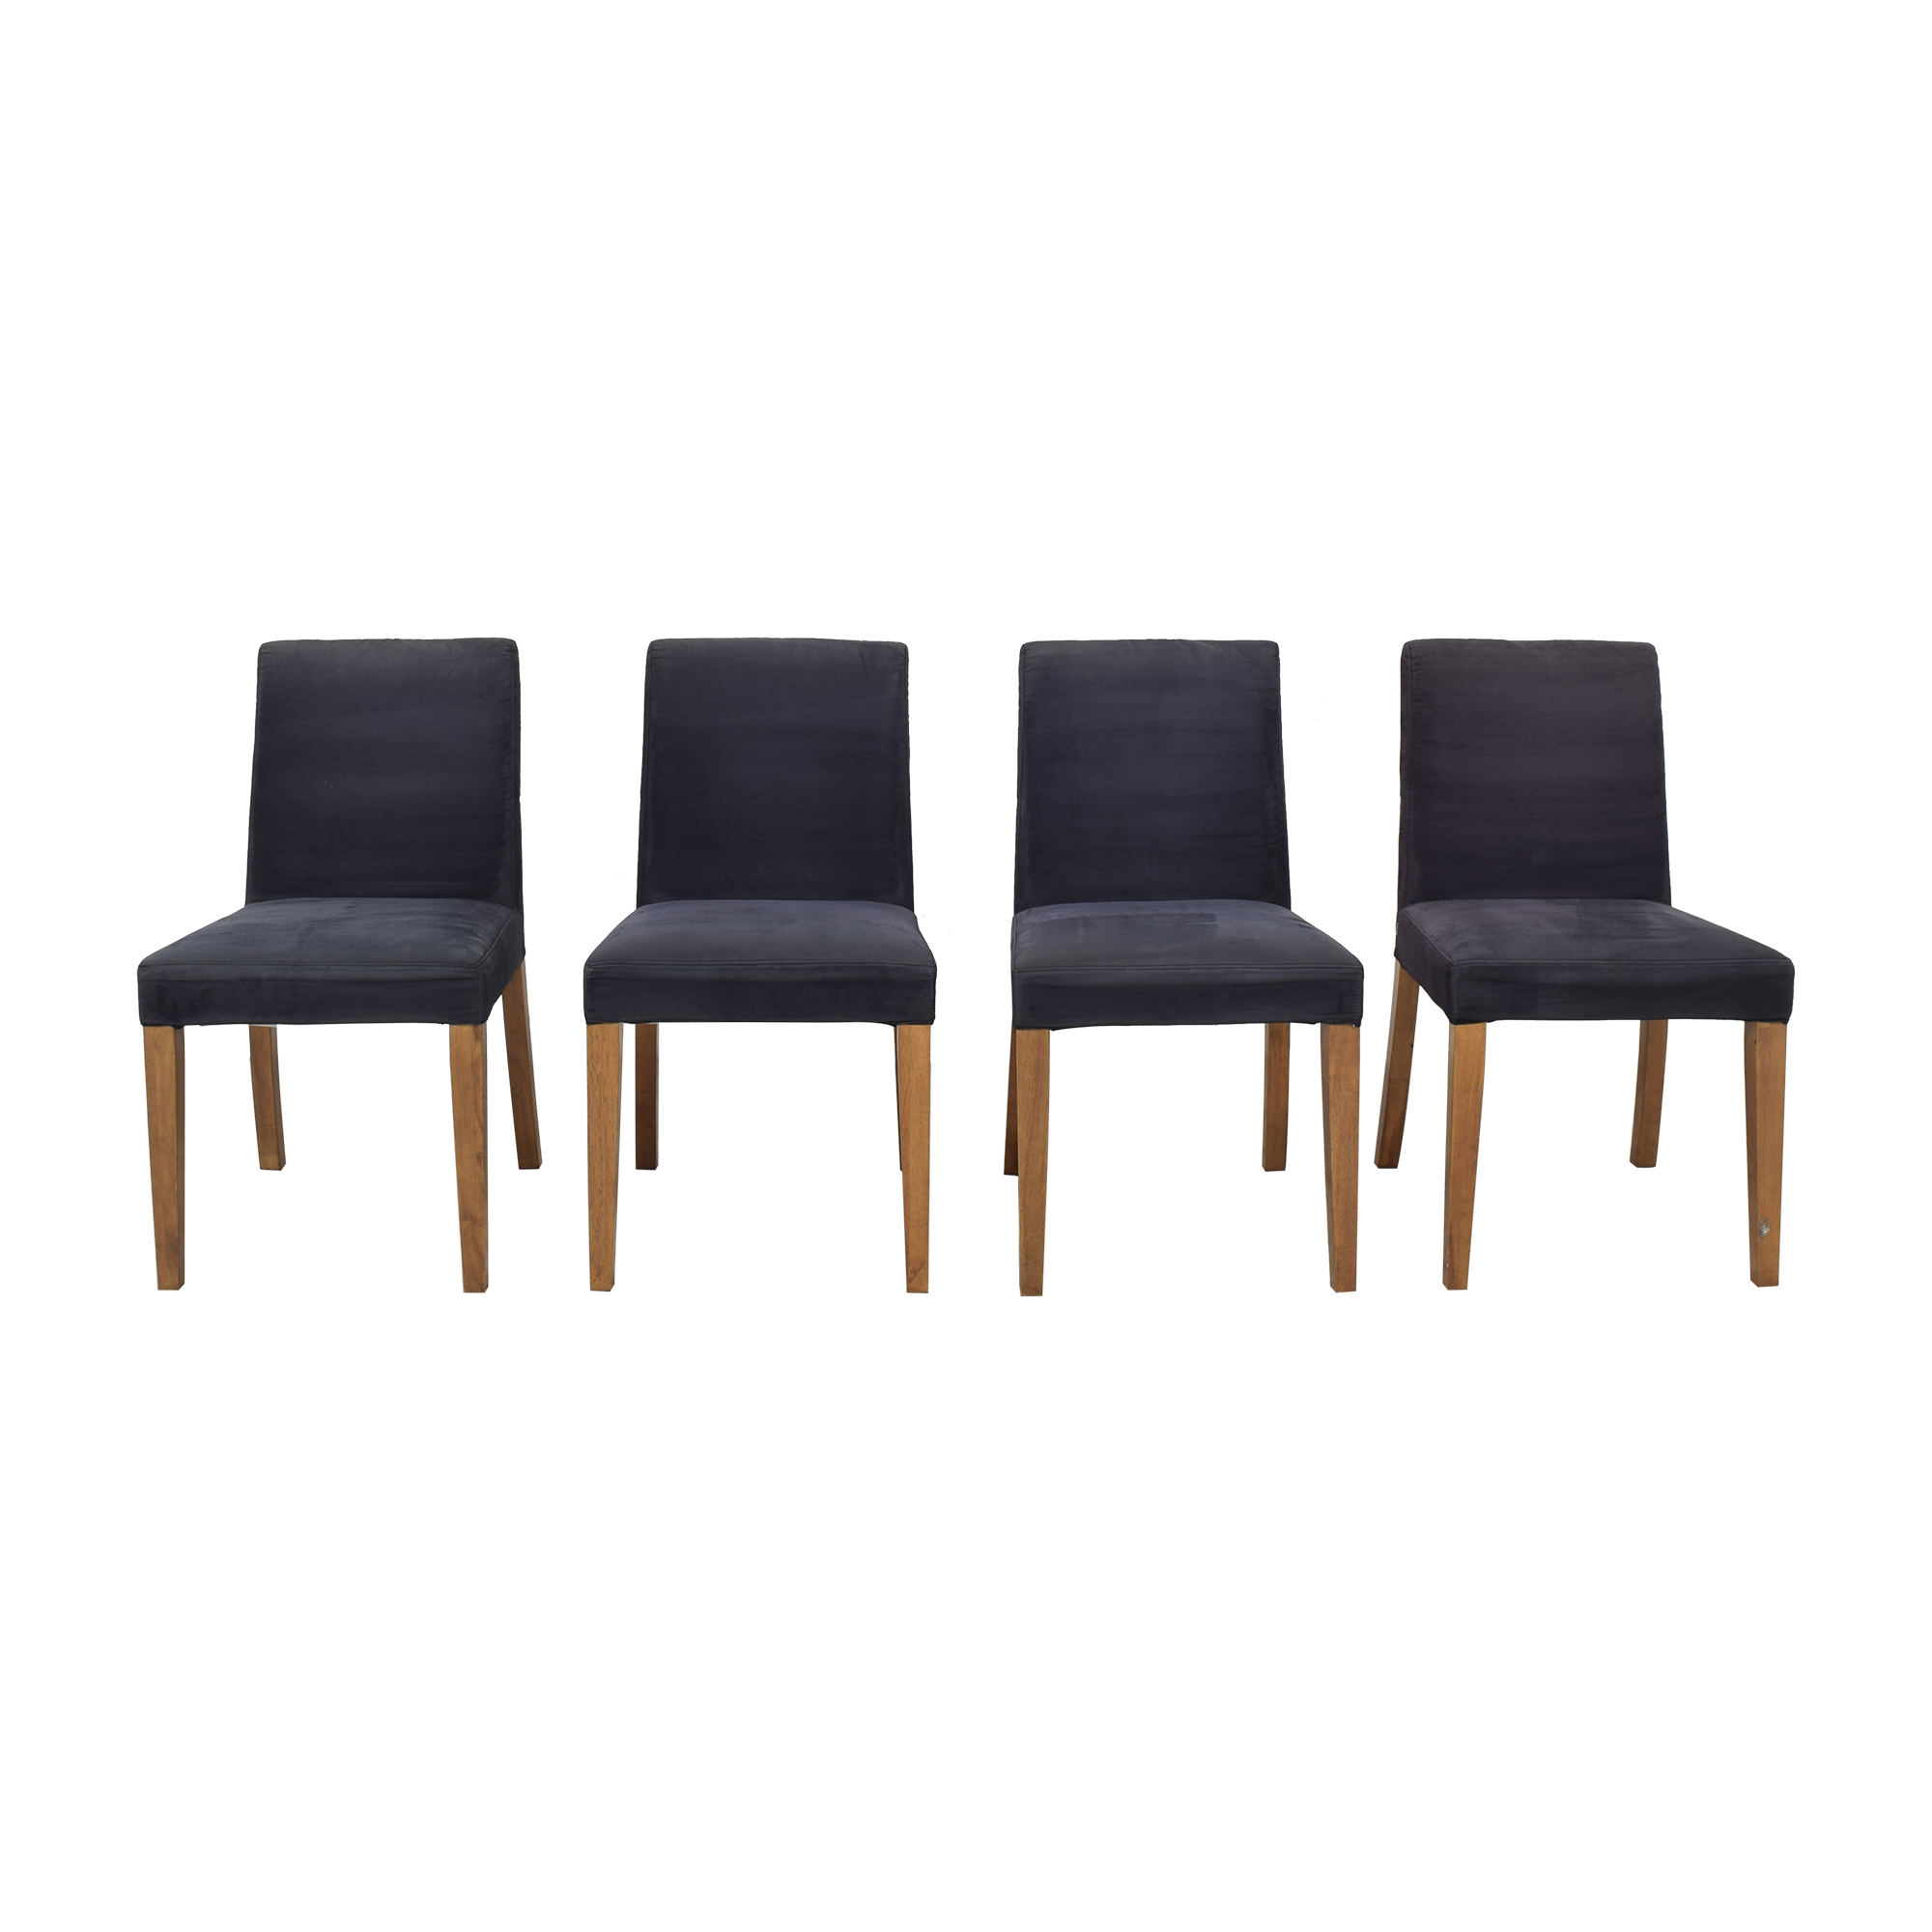 BoConcept BoConcept Cantono Upholstered Chairs for sale